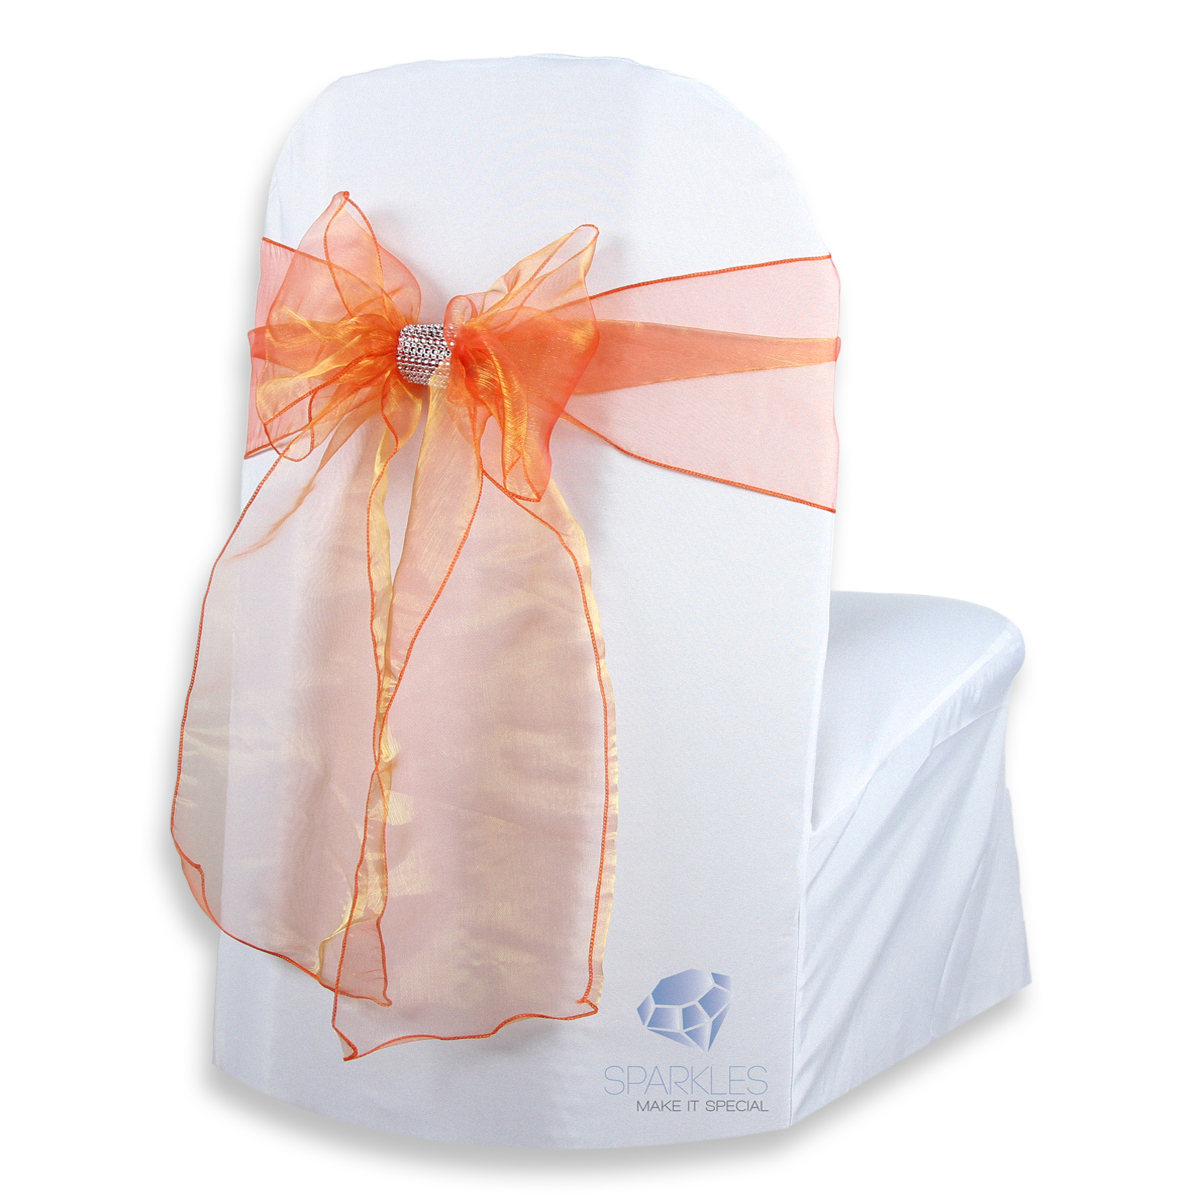 organza wedding chair sashes booster seat that attaches to 50 pcs cover bow sash 108 quotx8 quot party